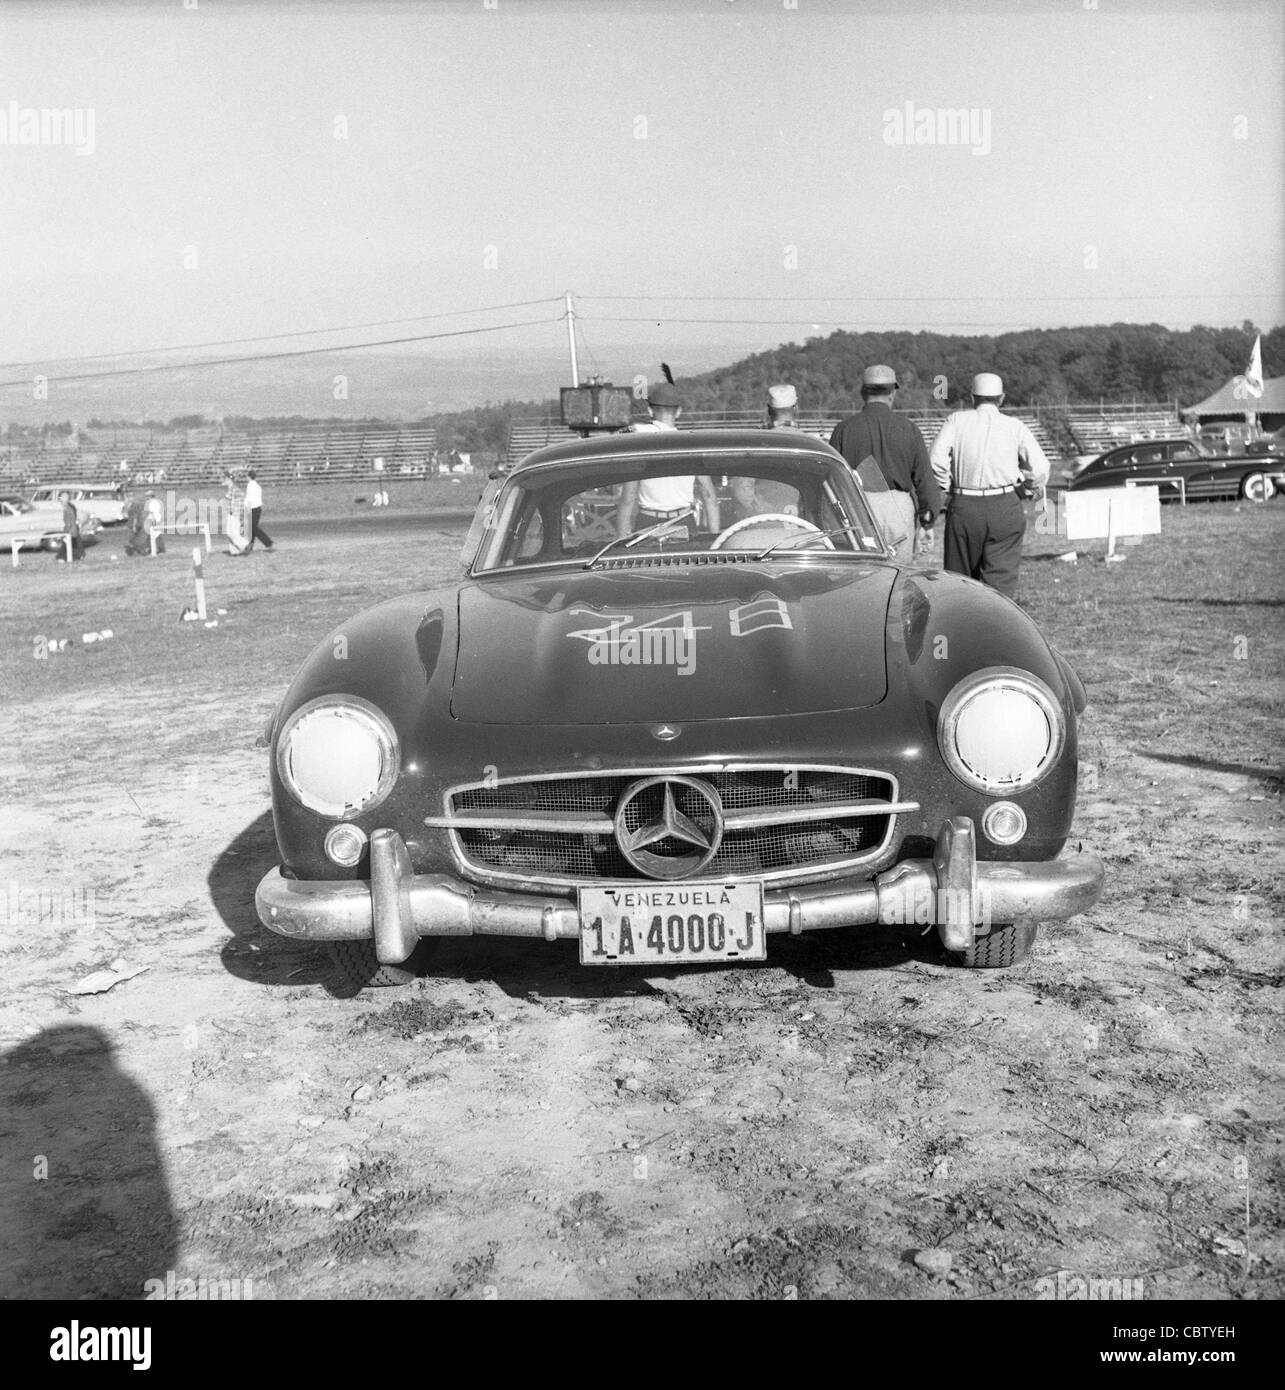 Sports Car Club Of America Races From The Early 1960s Or Late 1950s.  Mercedes Gold Wing